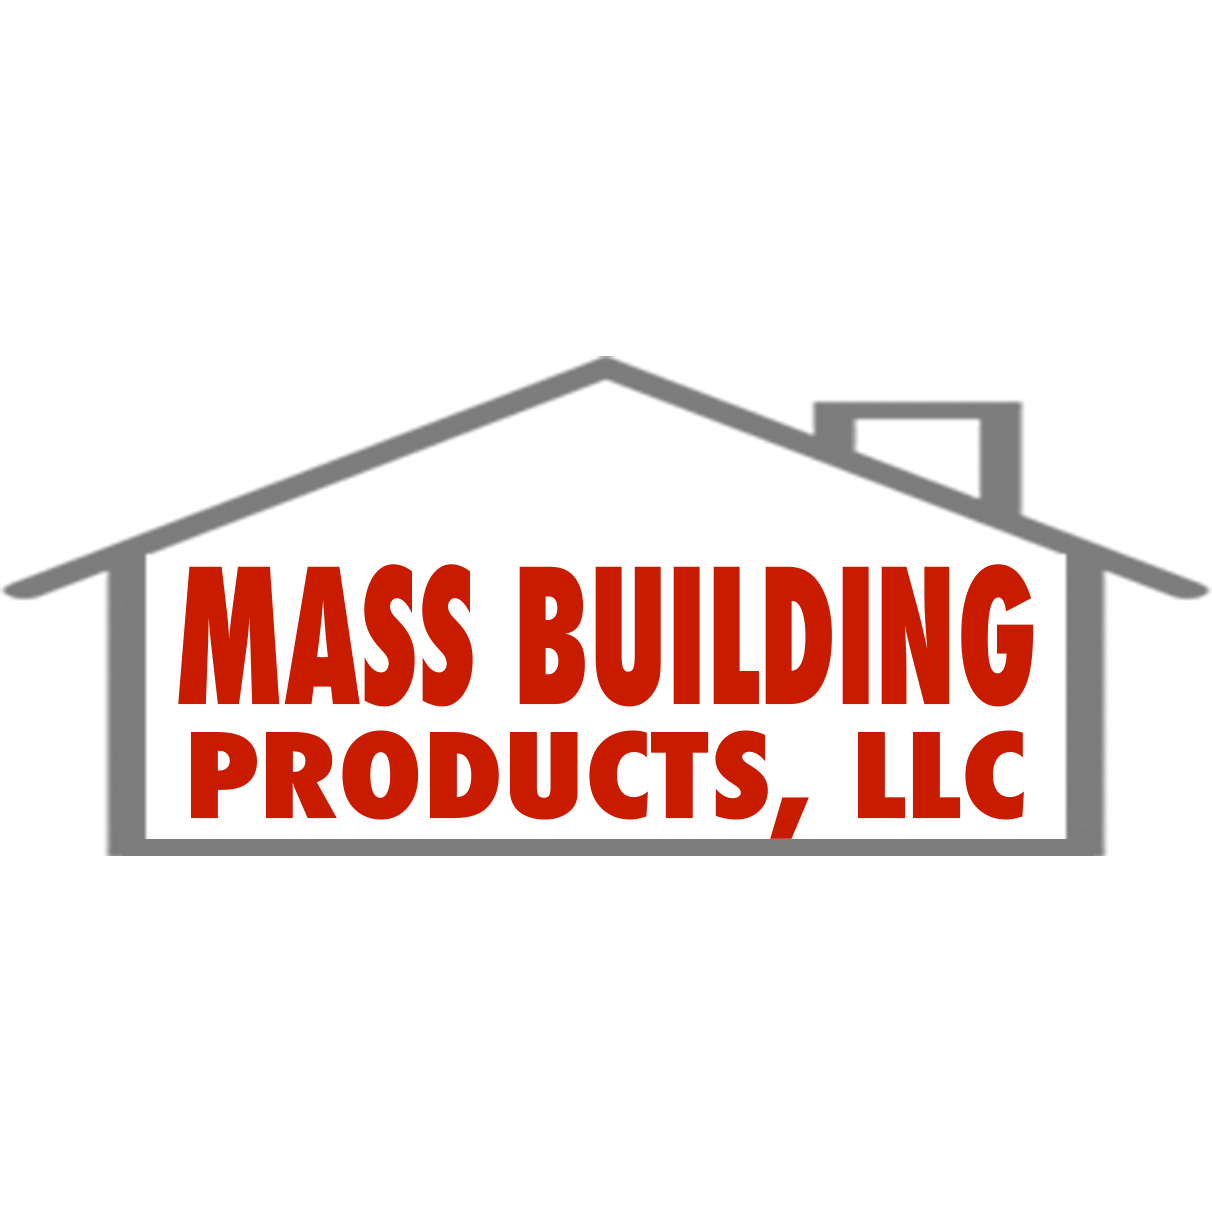 Mass Building Products, LLC